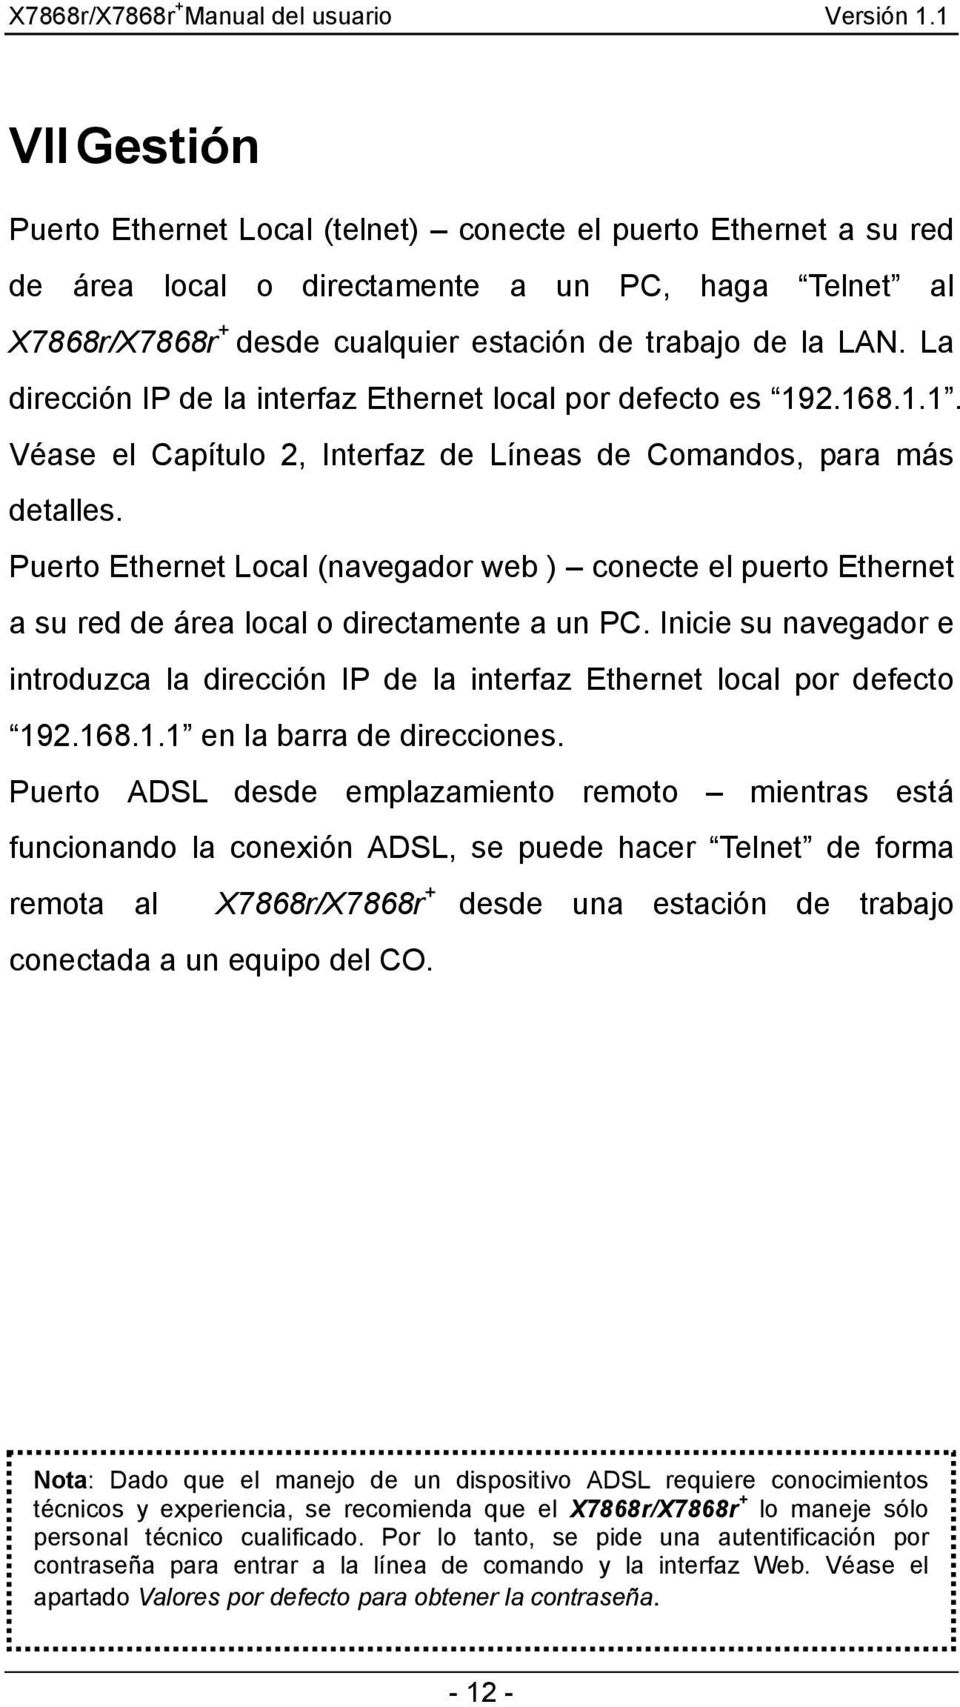 Puerto Ethernet Local (navegador web ) conecte el puerto Ethernet a su red de área local o directamente a un PC.